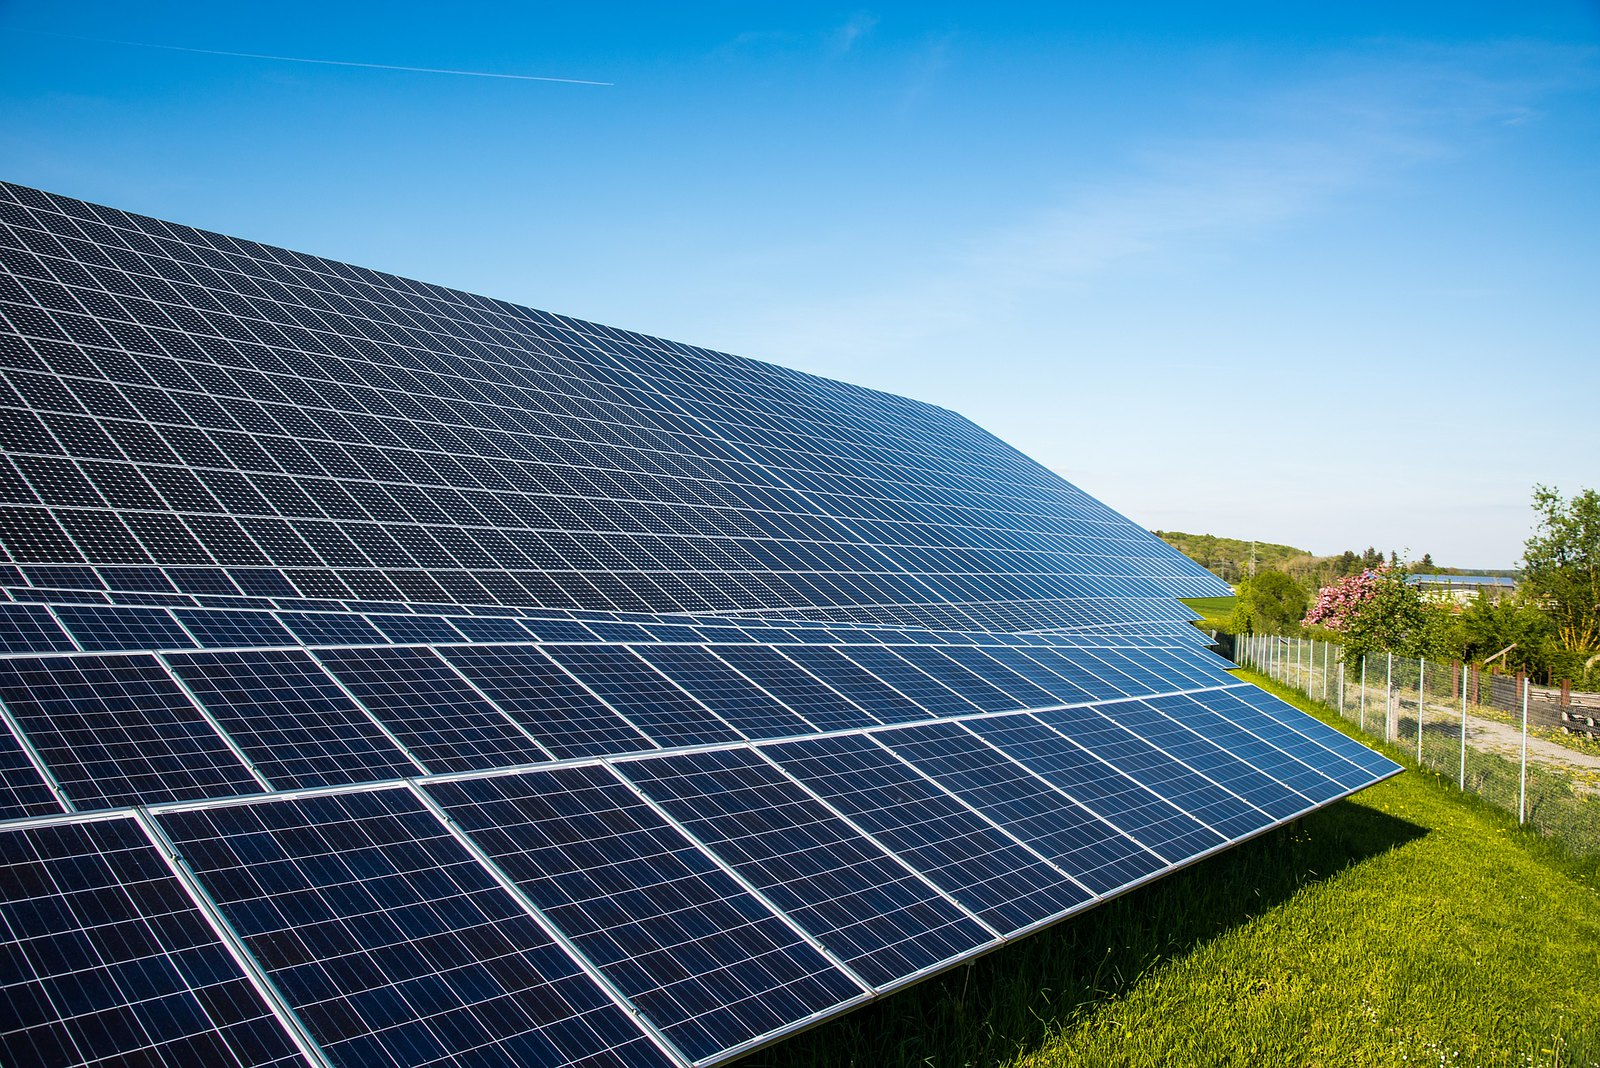 This stands as the second project in the 580MW PV portfolio that Cubico acquired from Cypress Creek Renewables (Cypress Creek) in January to reach financial close. Image: zak zak / Flickr